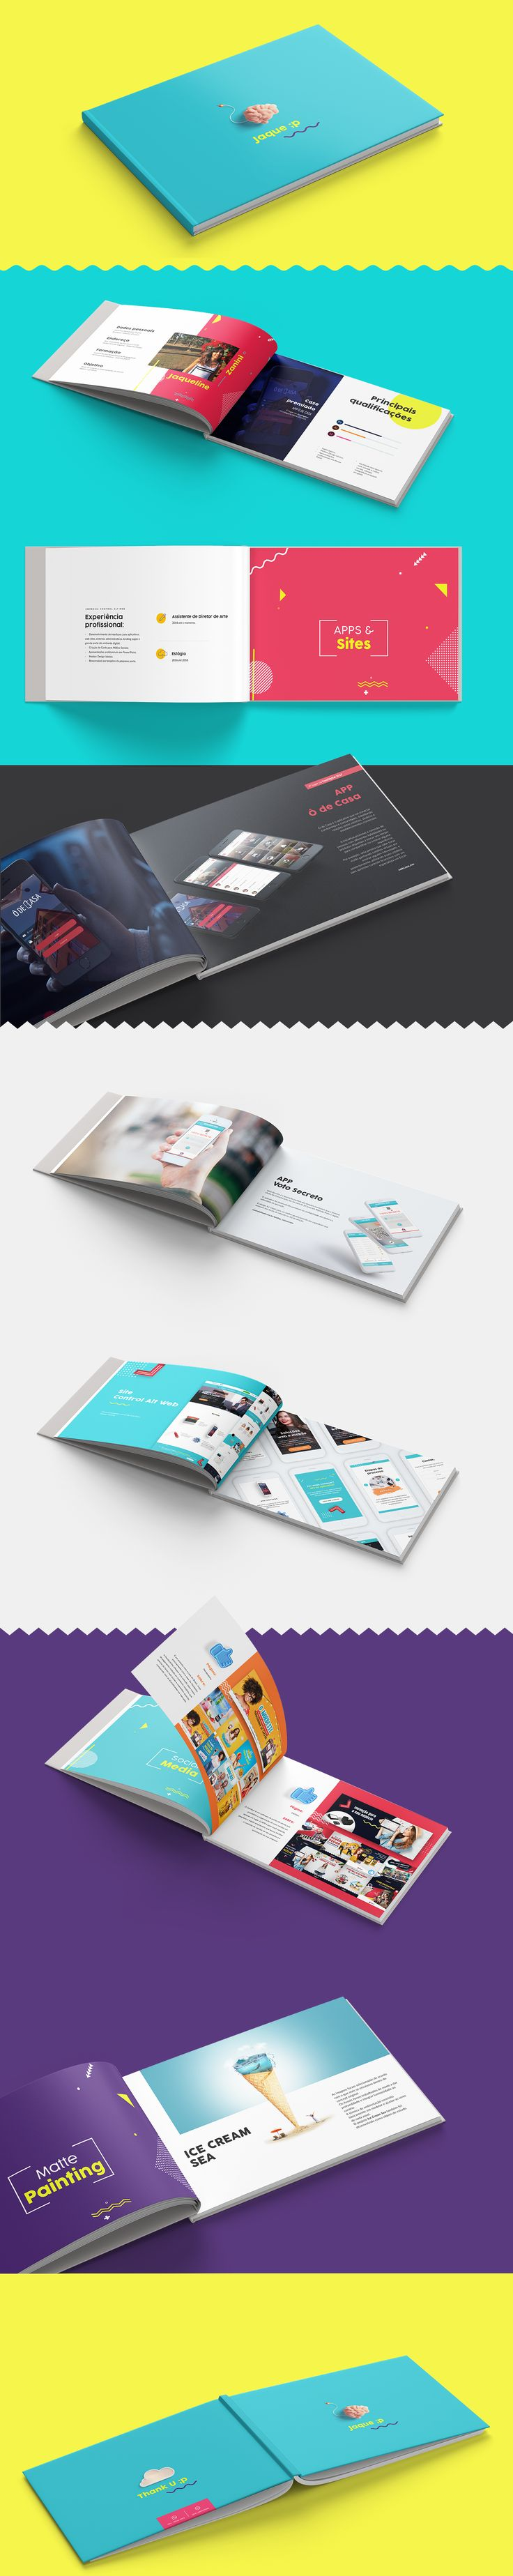 Behance Resume Template from resumes.tn